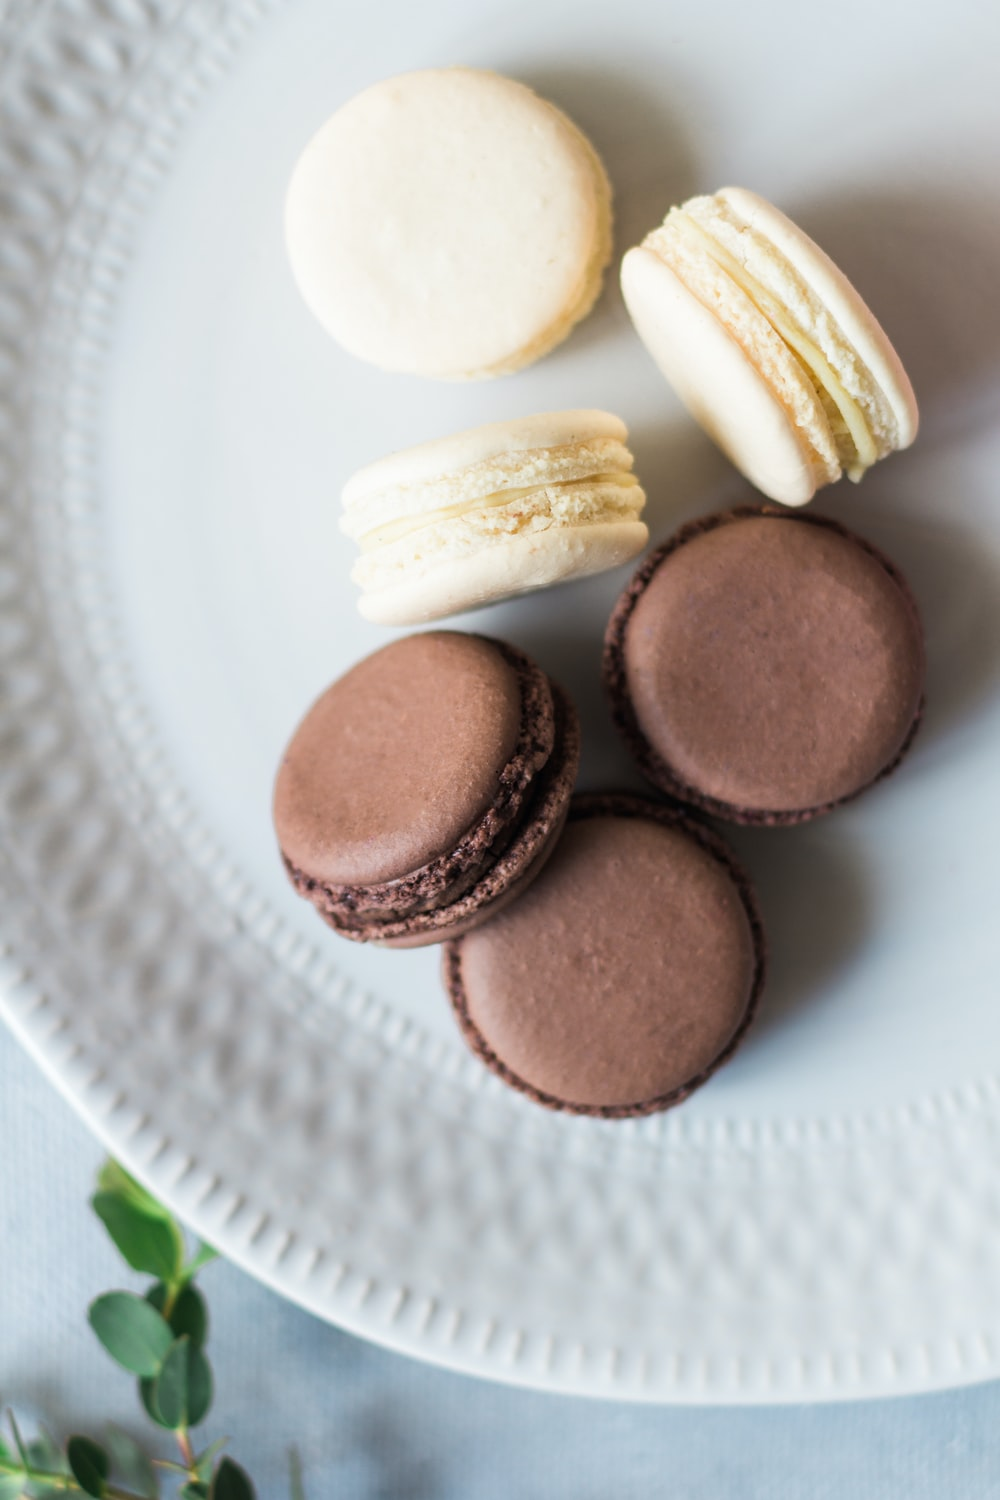 french macaron on plate